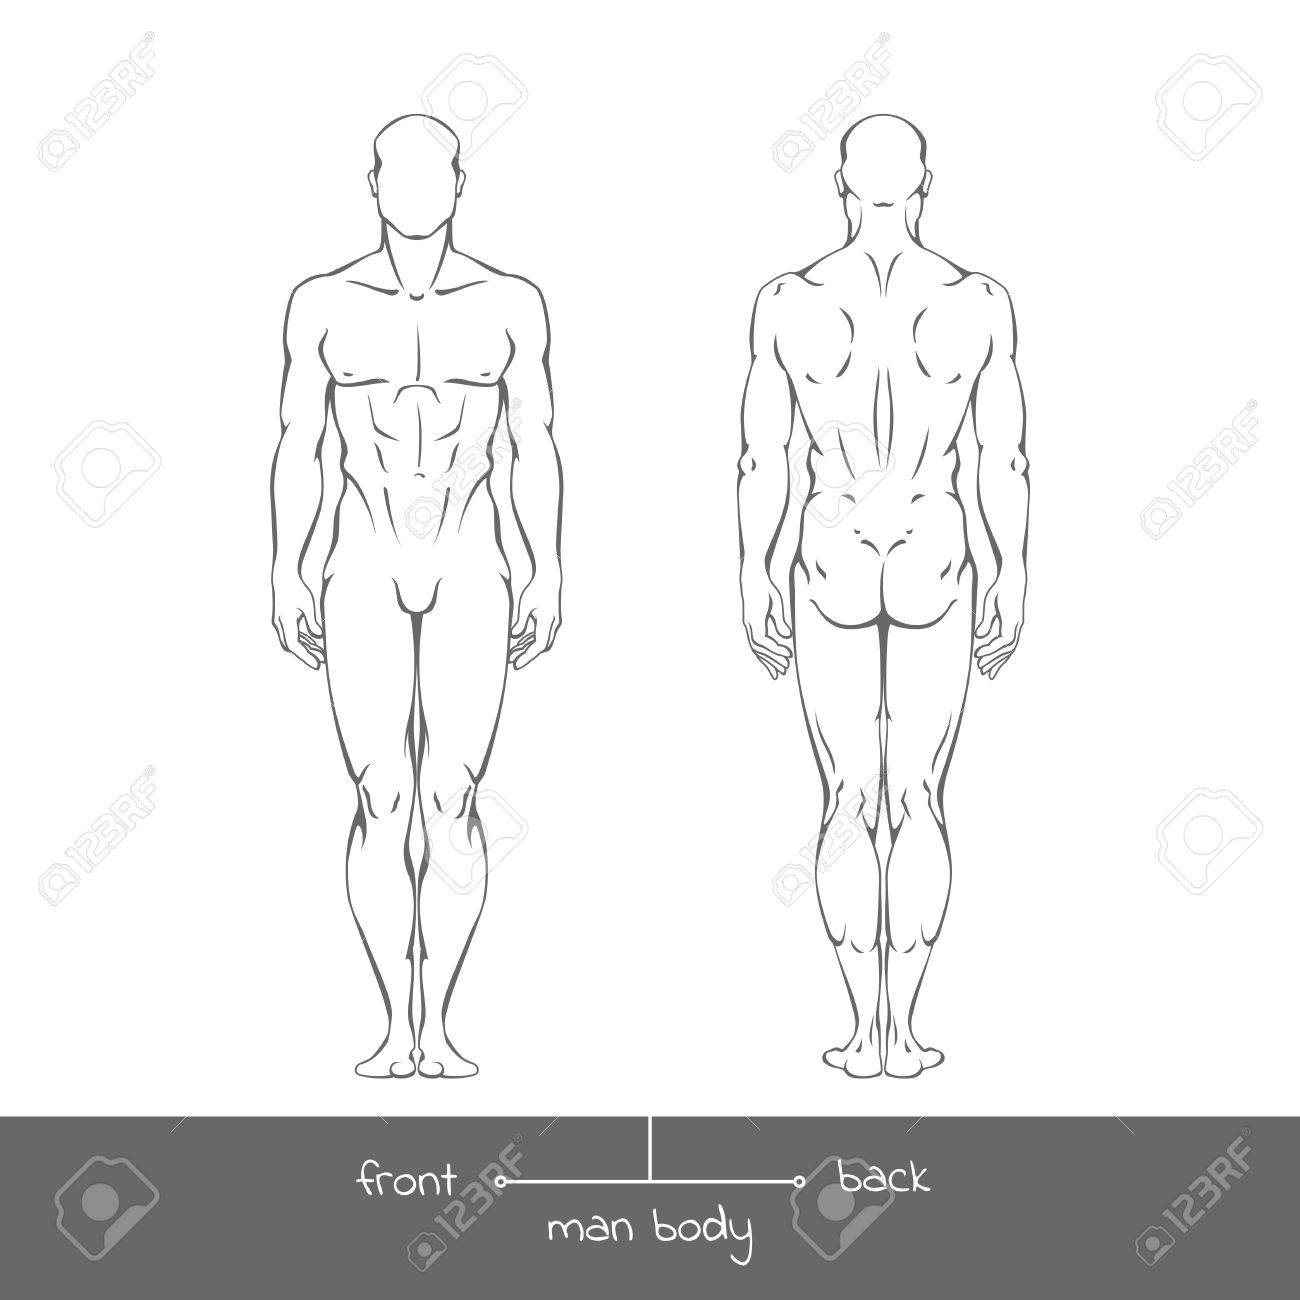 Healthy young man from front and back view in outline style. Male muscular body shapes linear illustration with the inscription: front and back. - 56086578